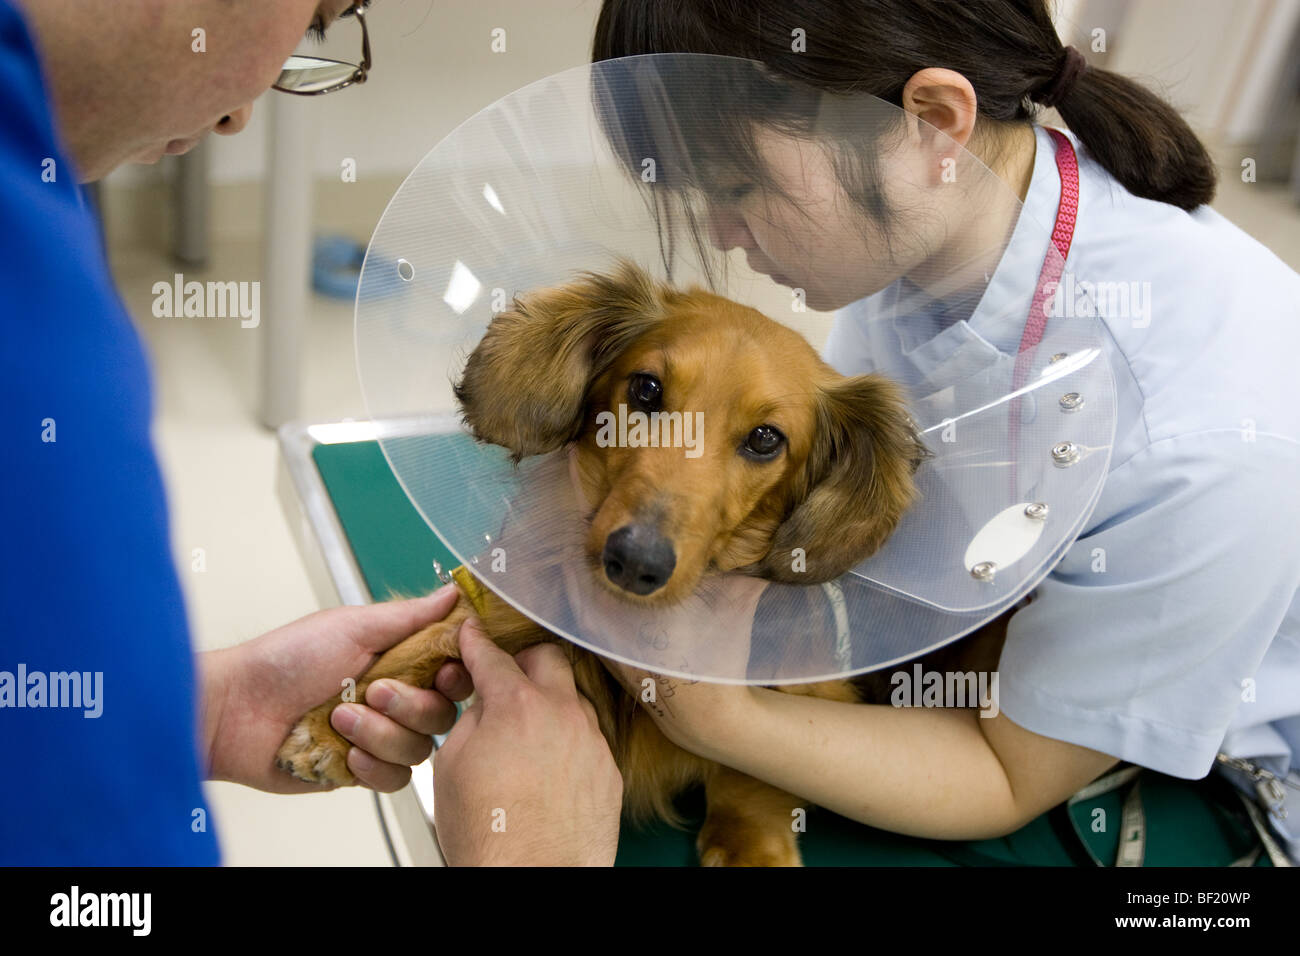 A dachshound dog undergoes a CT scan, at a Japanese veterinary clinic. Stock Photo